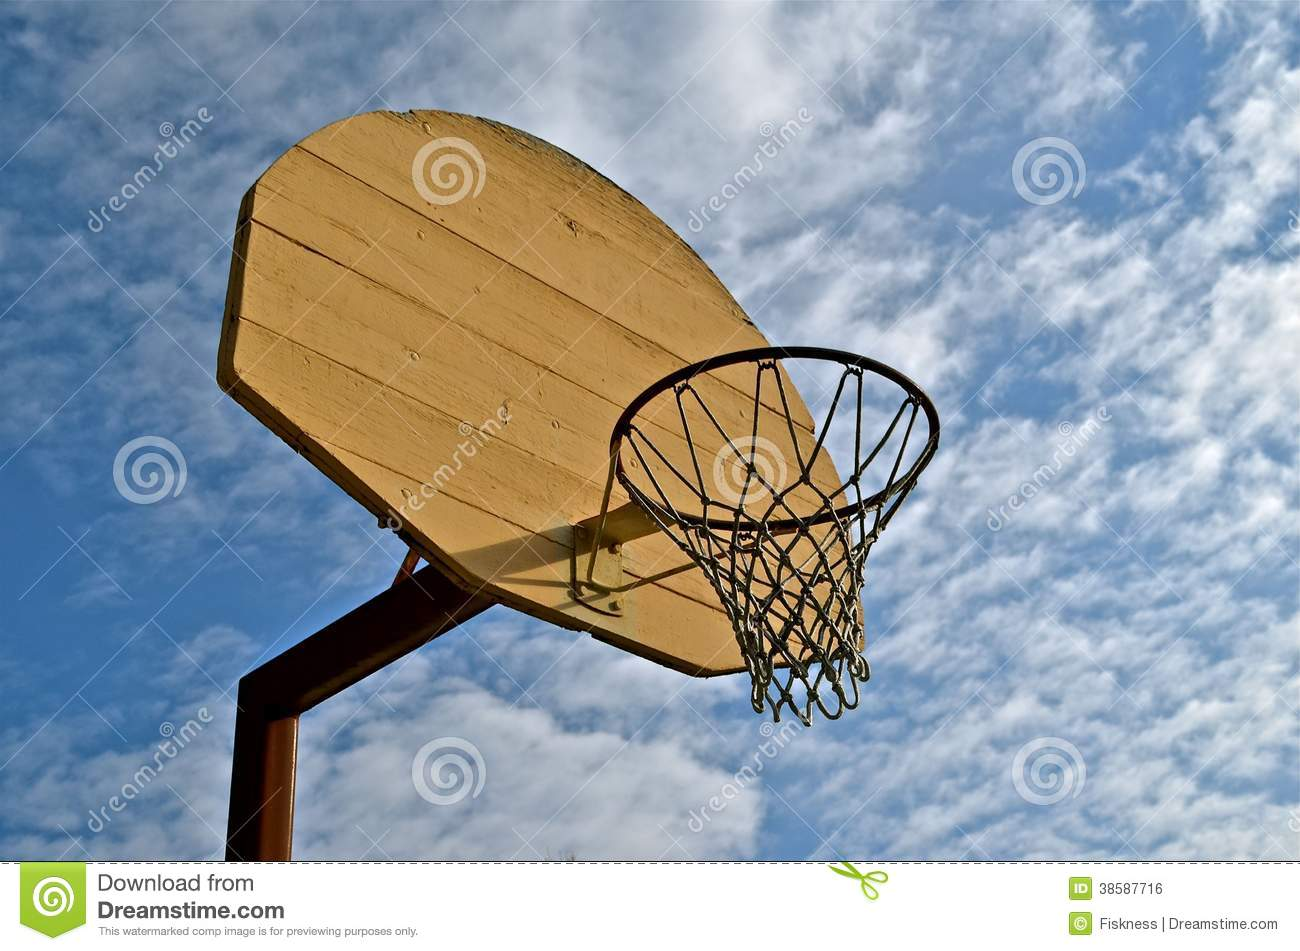 Outdoor Home Basketball Hoop Plans on basketball hoop from the side, flowers outdoor, basketball hoop model, benches outdoor, basketball court, basketball hoop side angle, basketball hoop dimensions, basketball hoop front, games outdoor, basketball hoop background, basketball toys for toddlers, basketball hoop coloring pages, basketball hoop wallpaper, grills outdoor, basketball hoop set, lanterns outdoor,